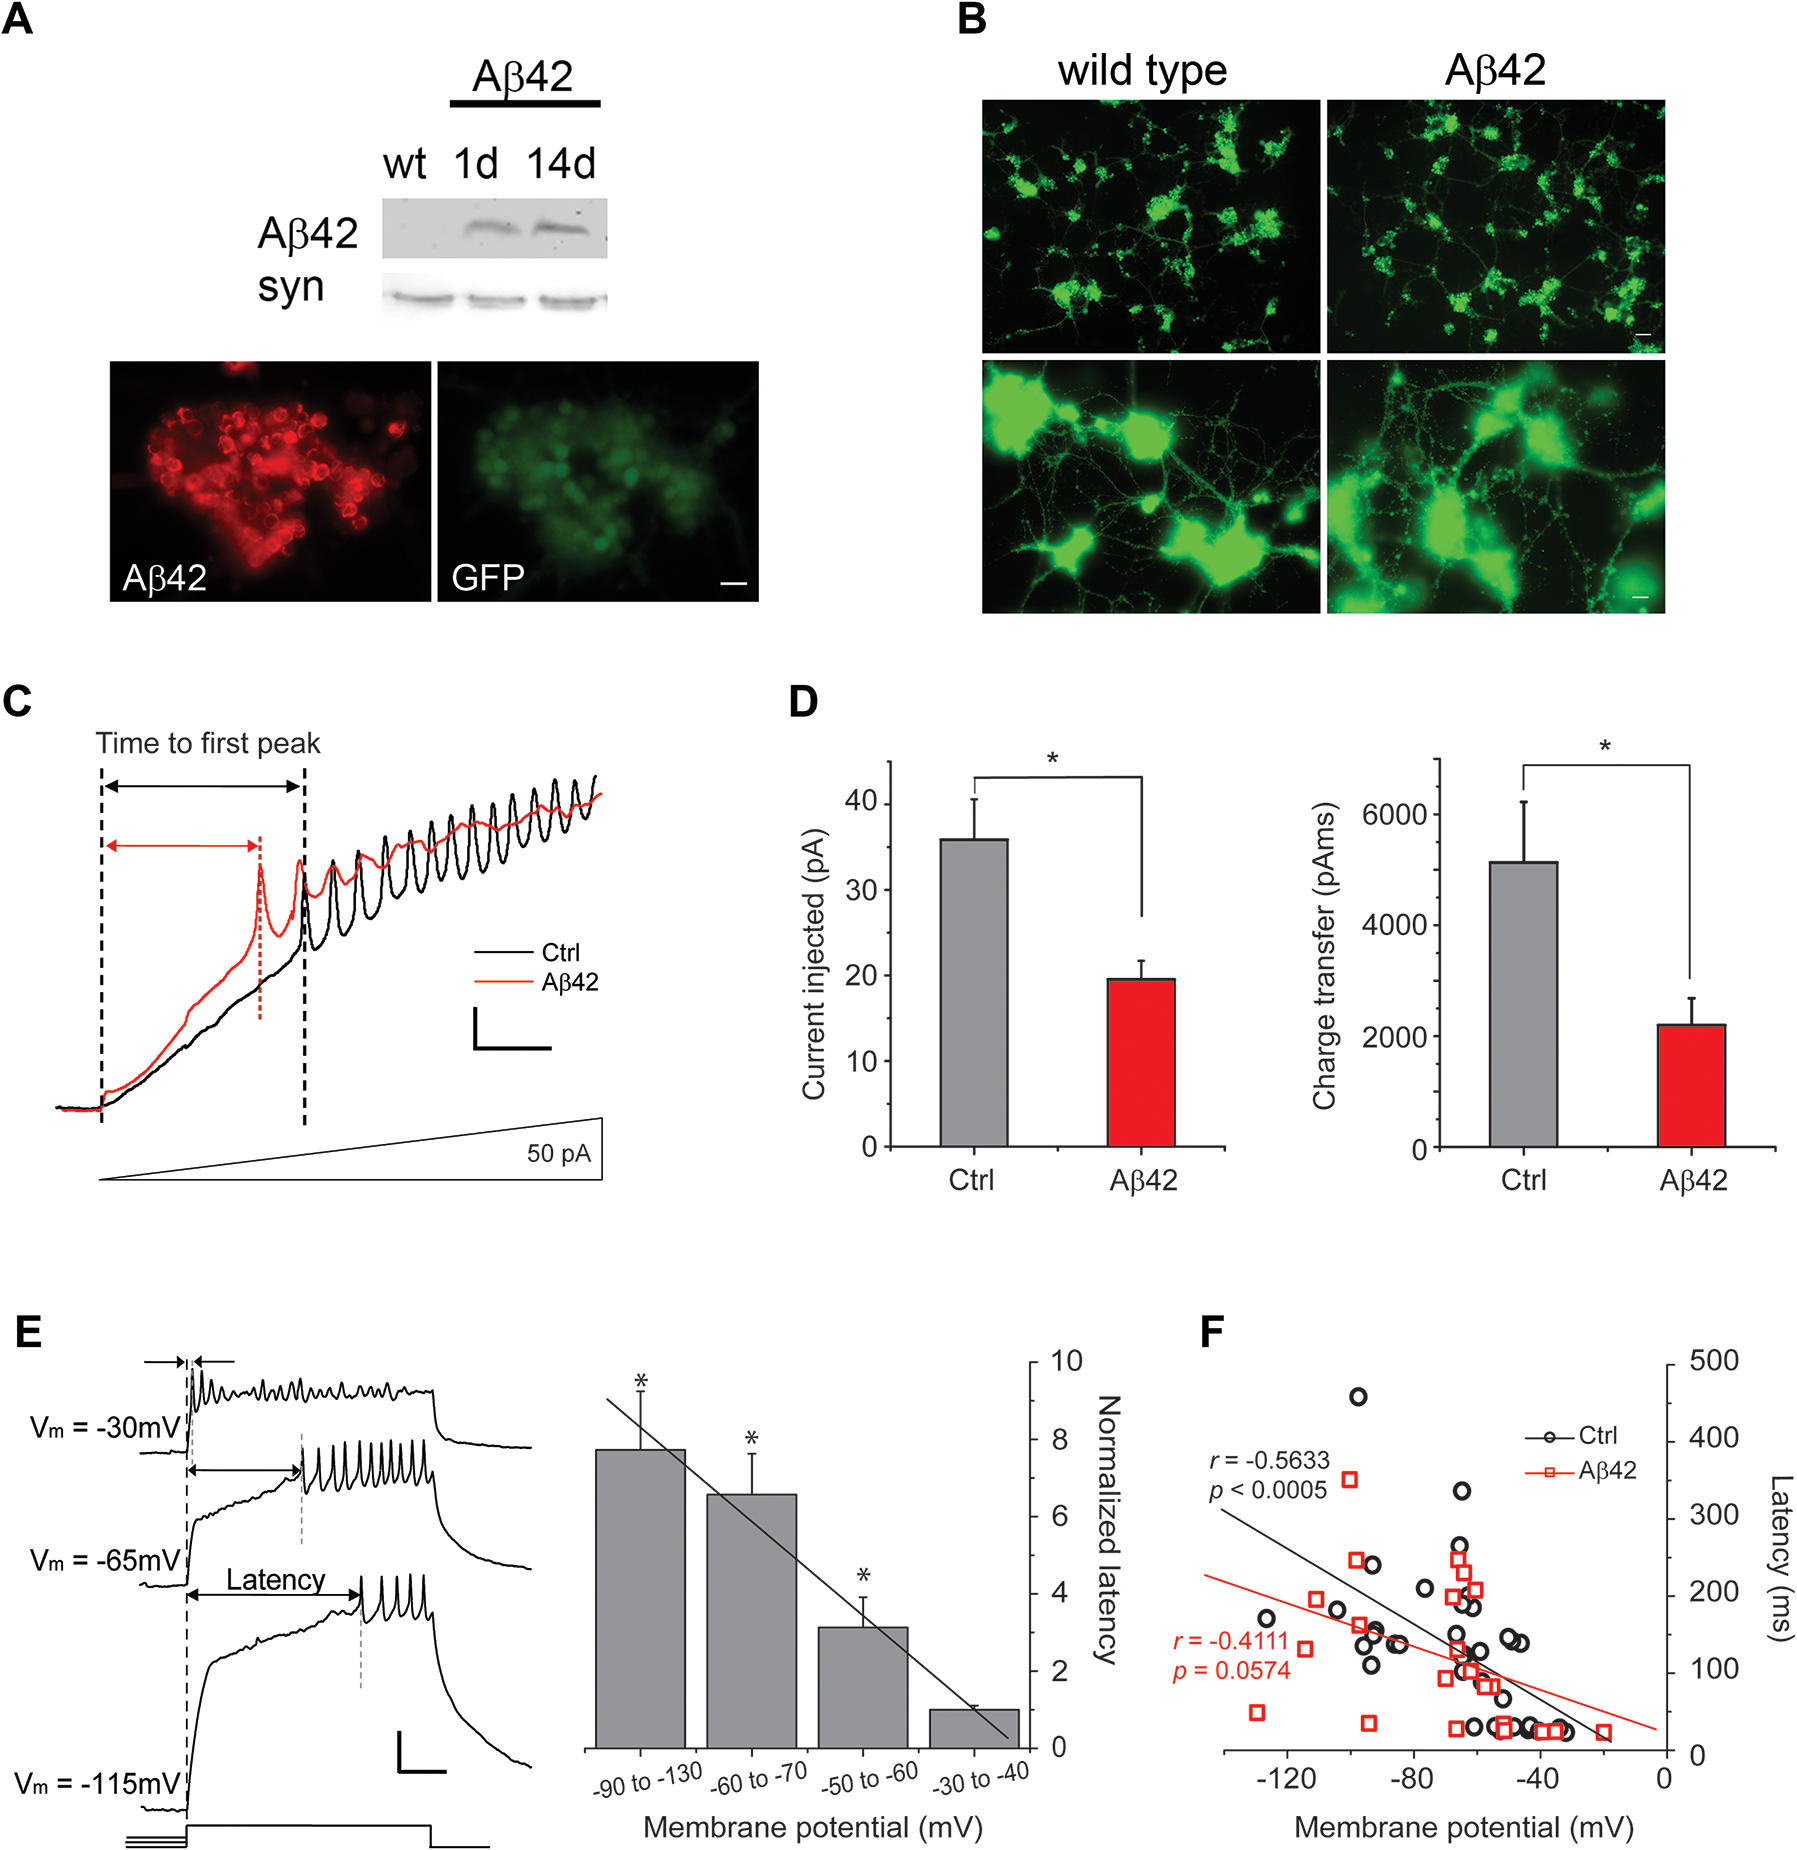 Aβ42 induces increased neuronal excitability in cultures 9 days old.